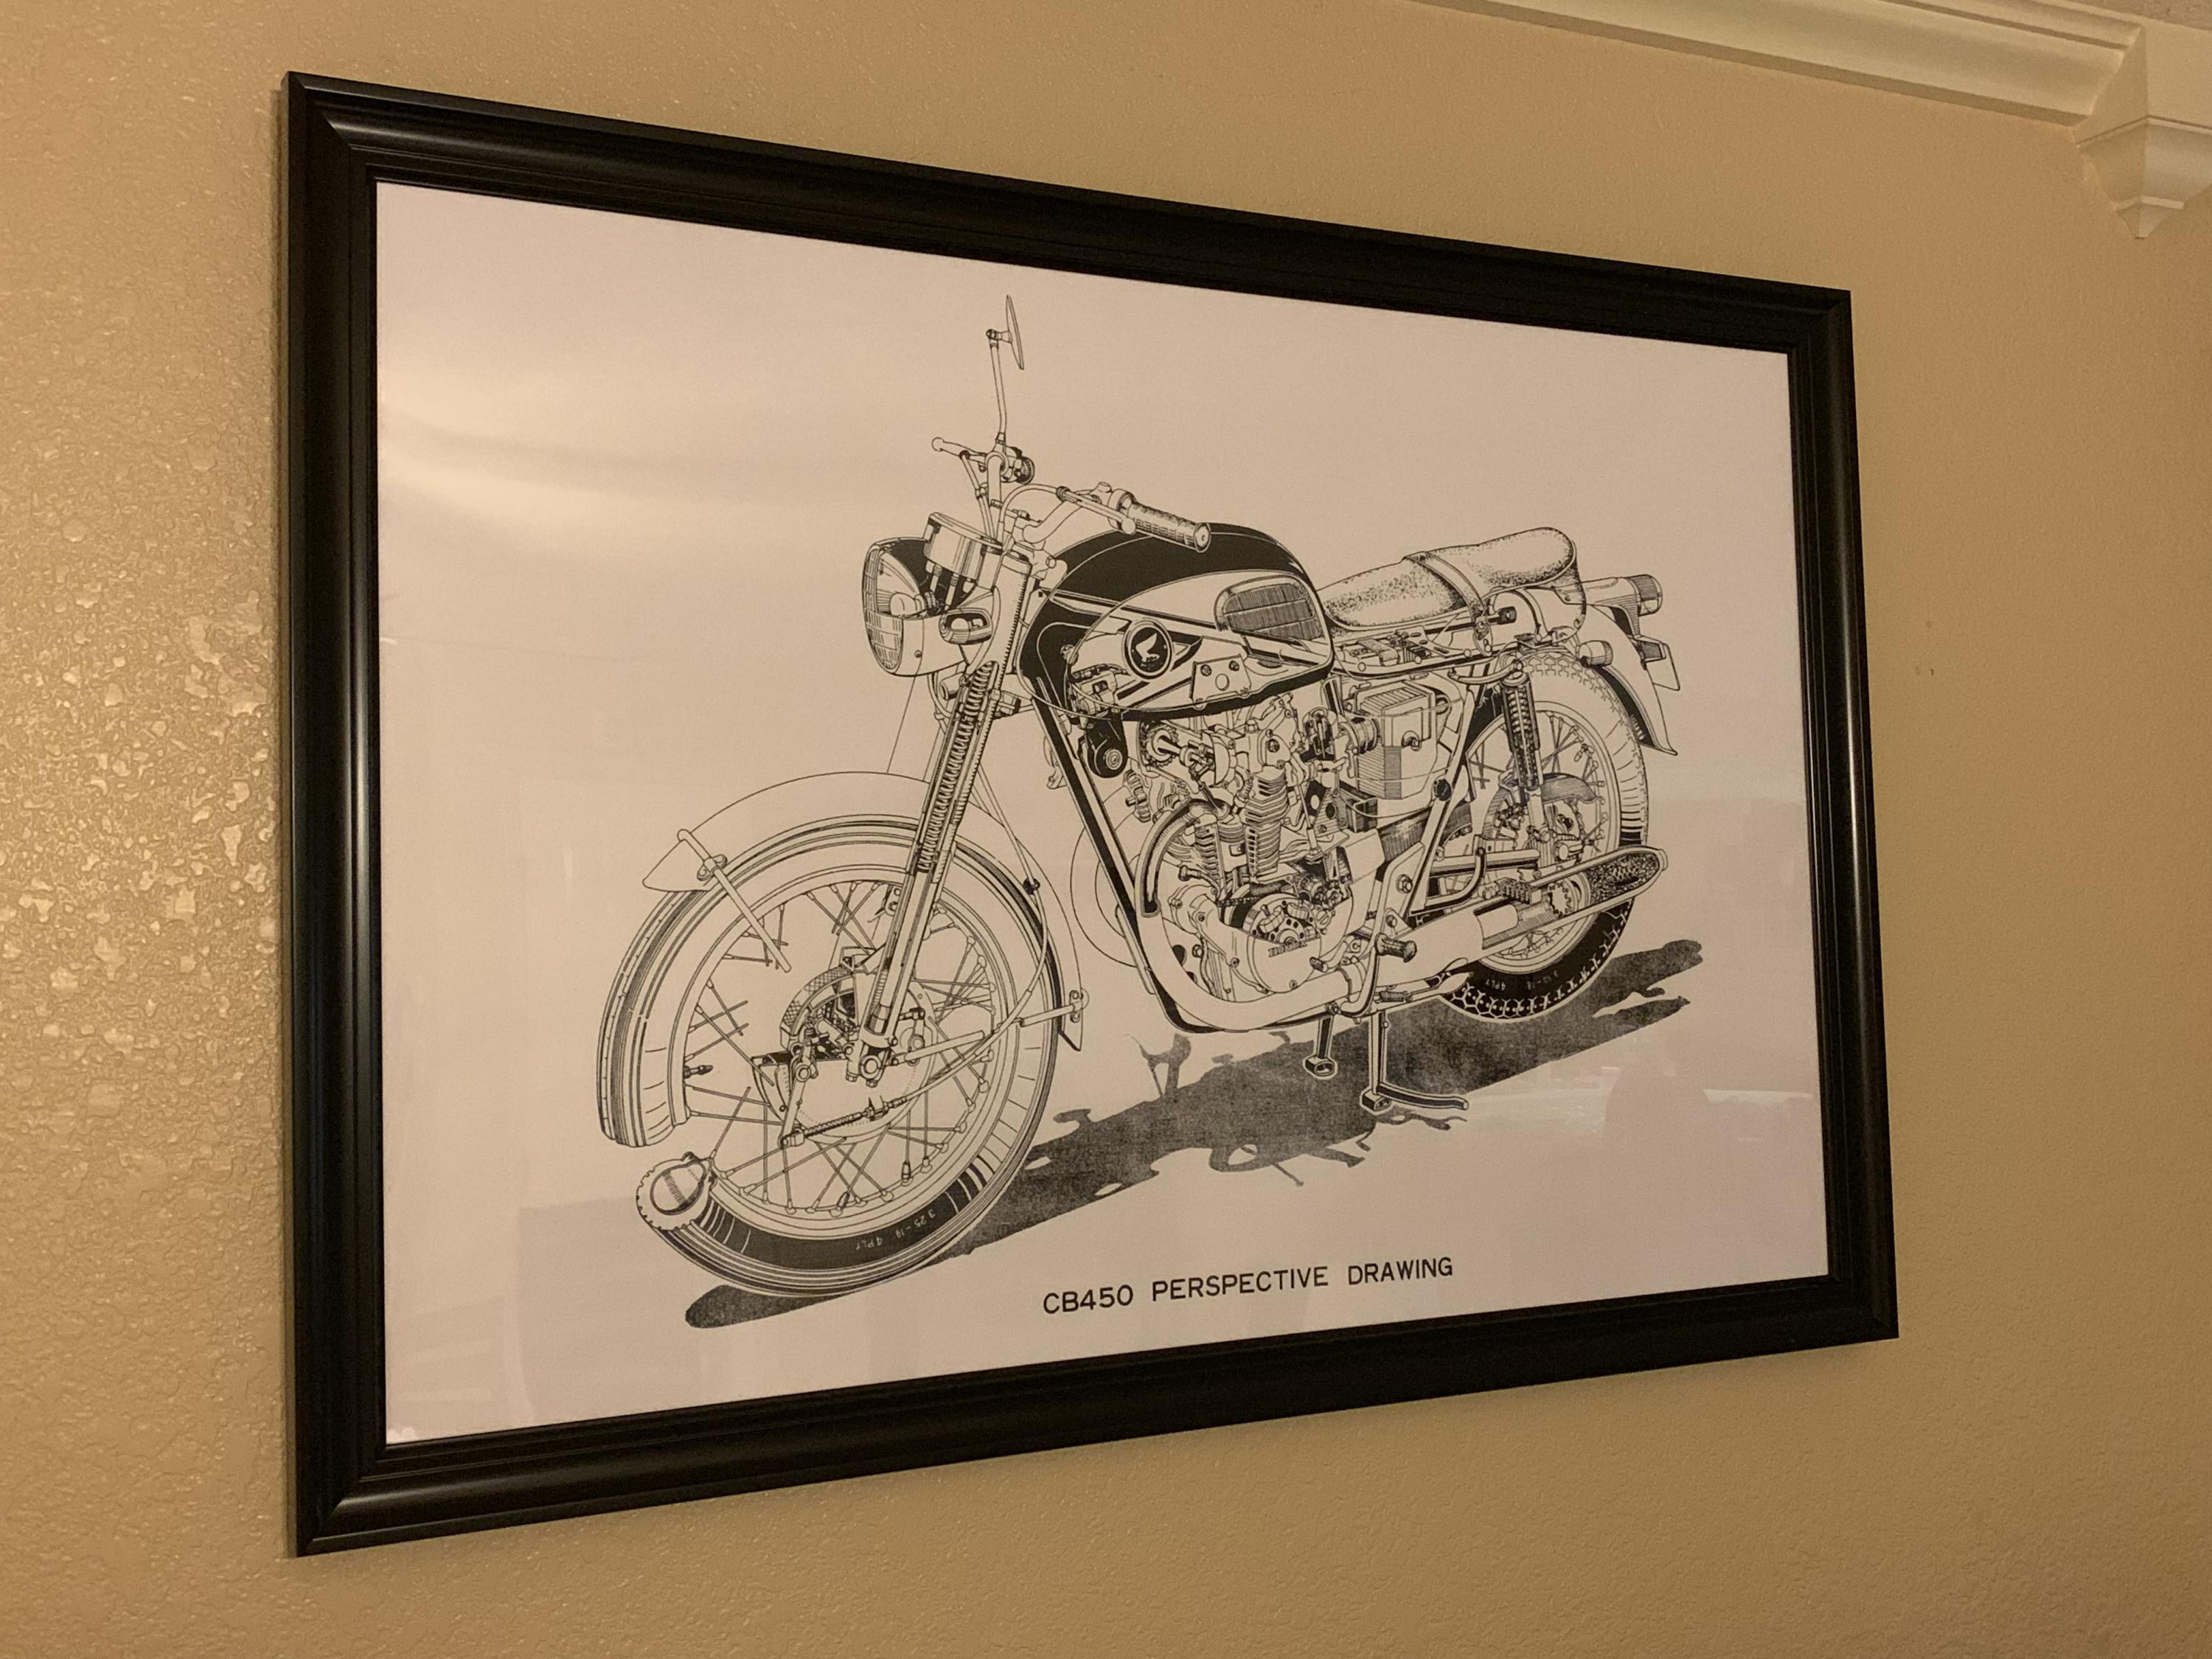 Cb450 perspective drawing poster-img_3225.jpg